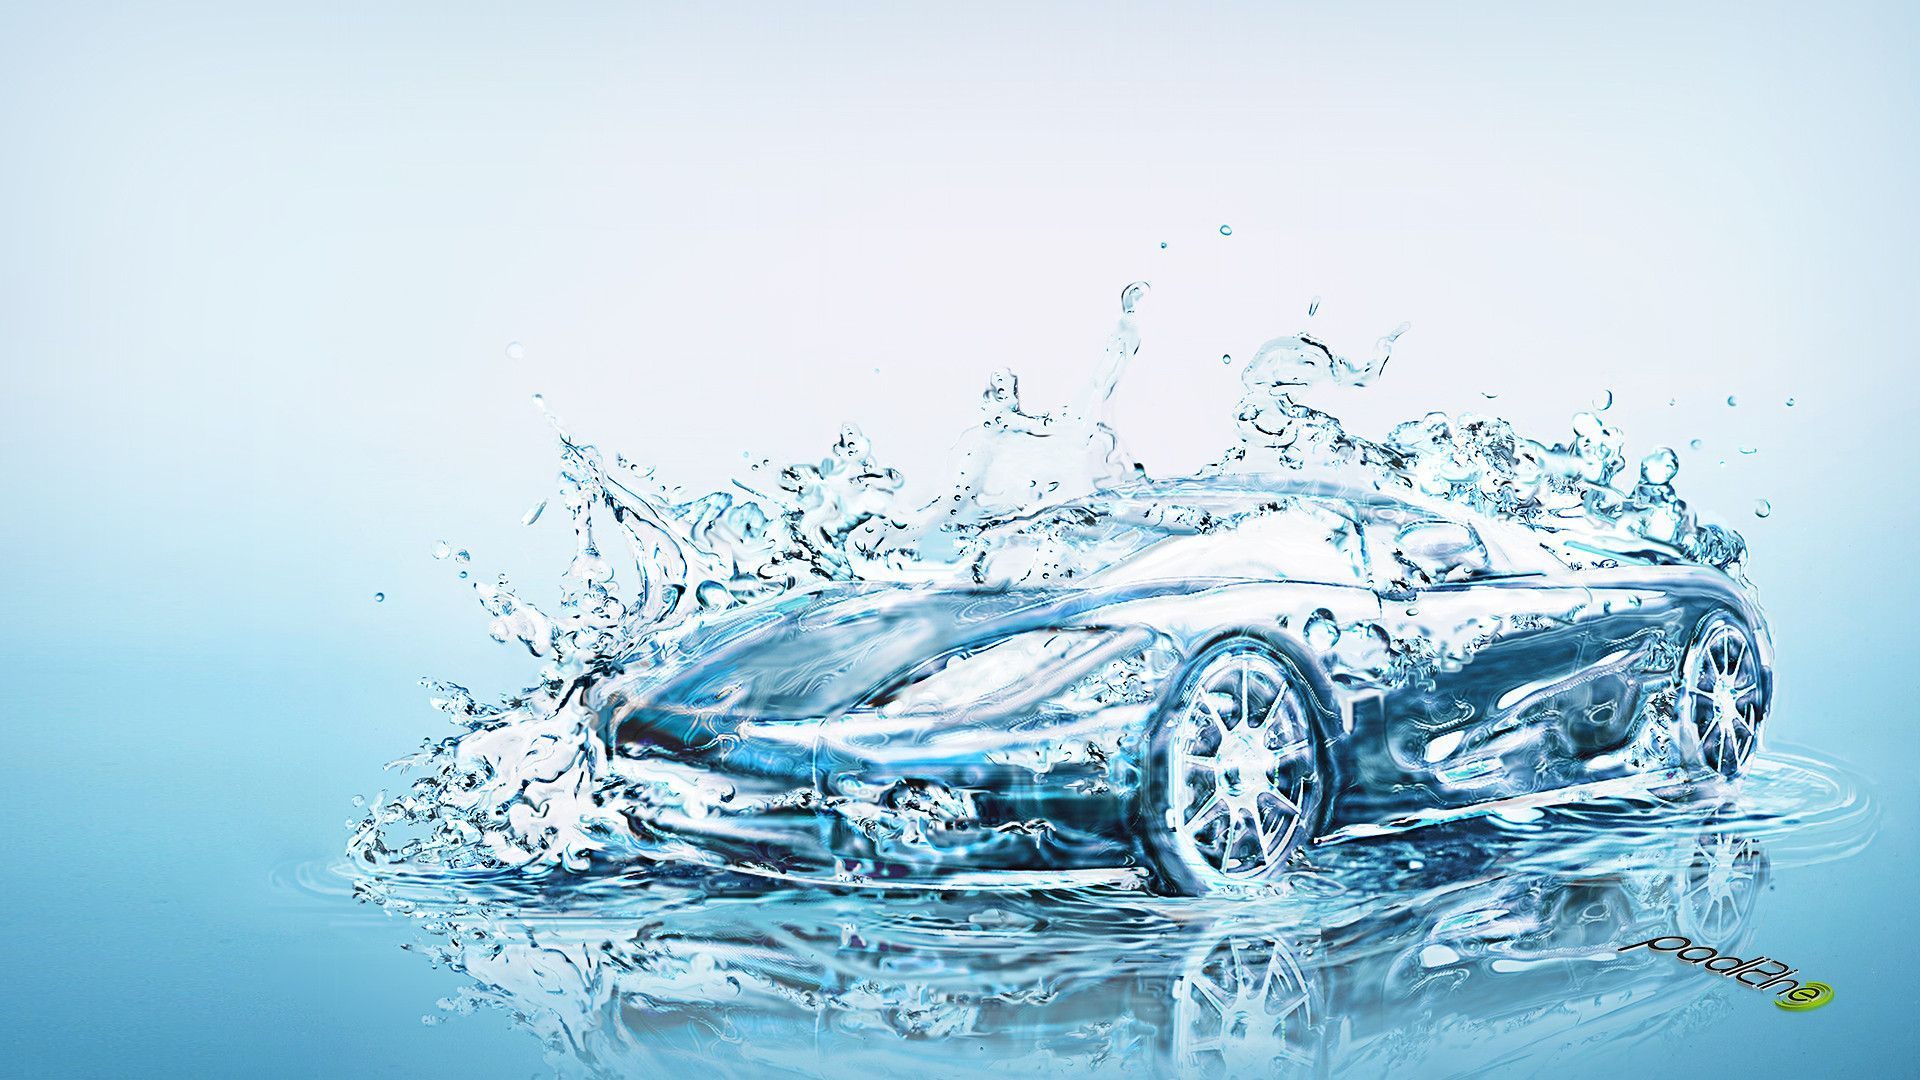 Washing The Car Background, Pictures For Business Cards